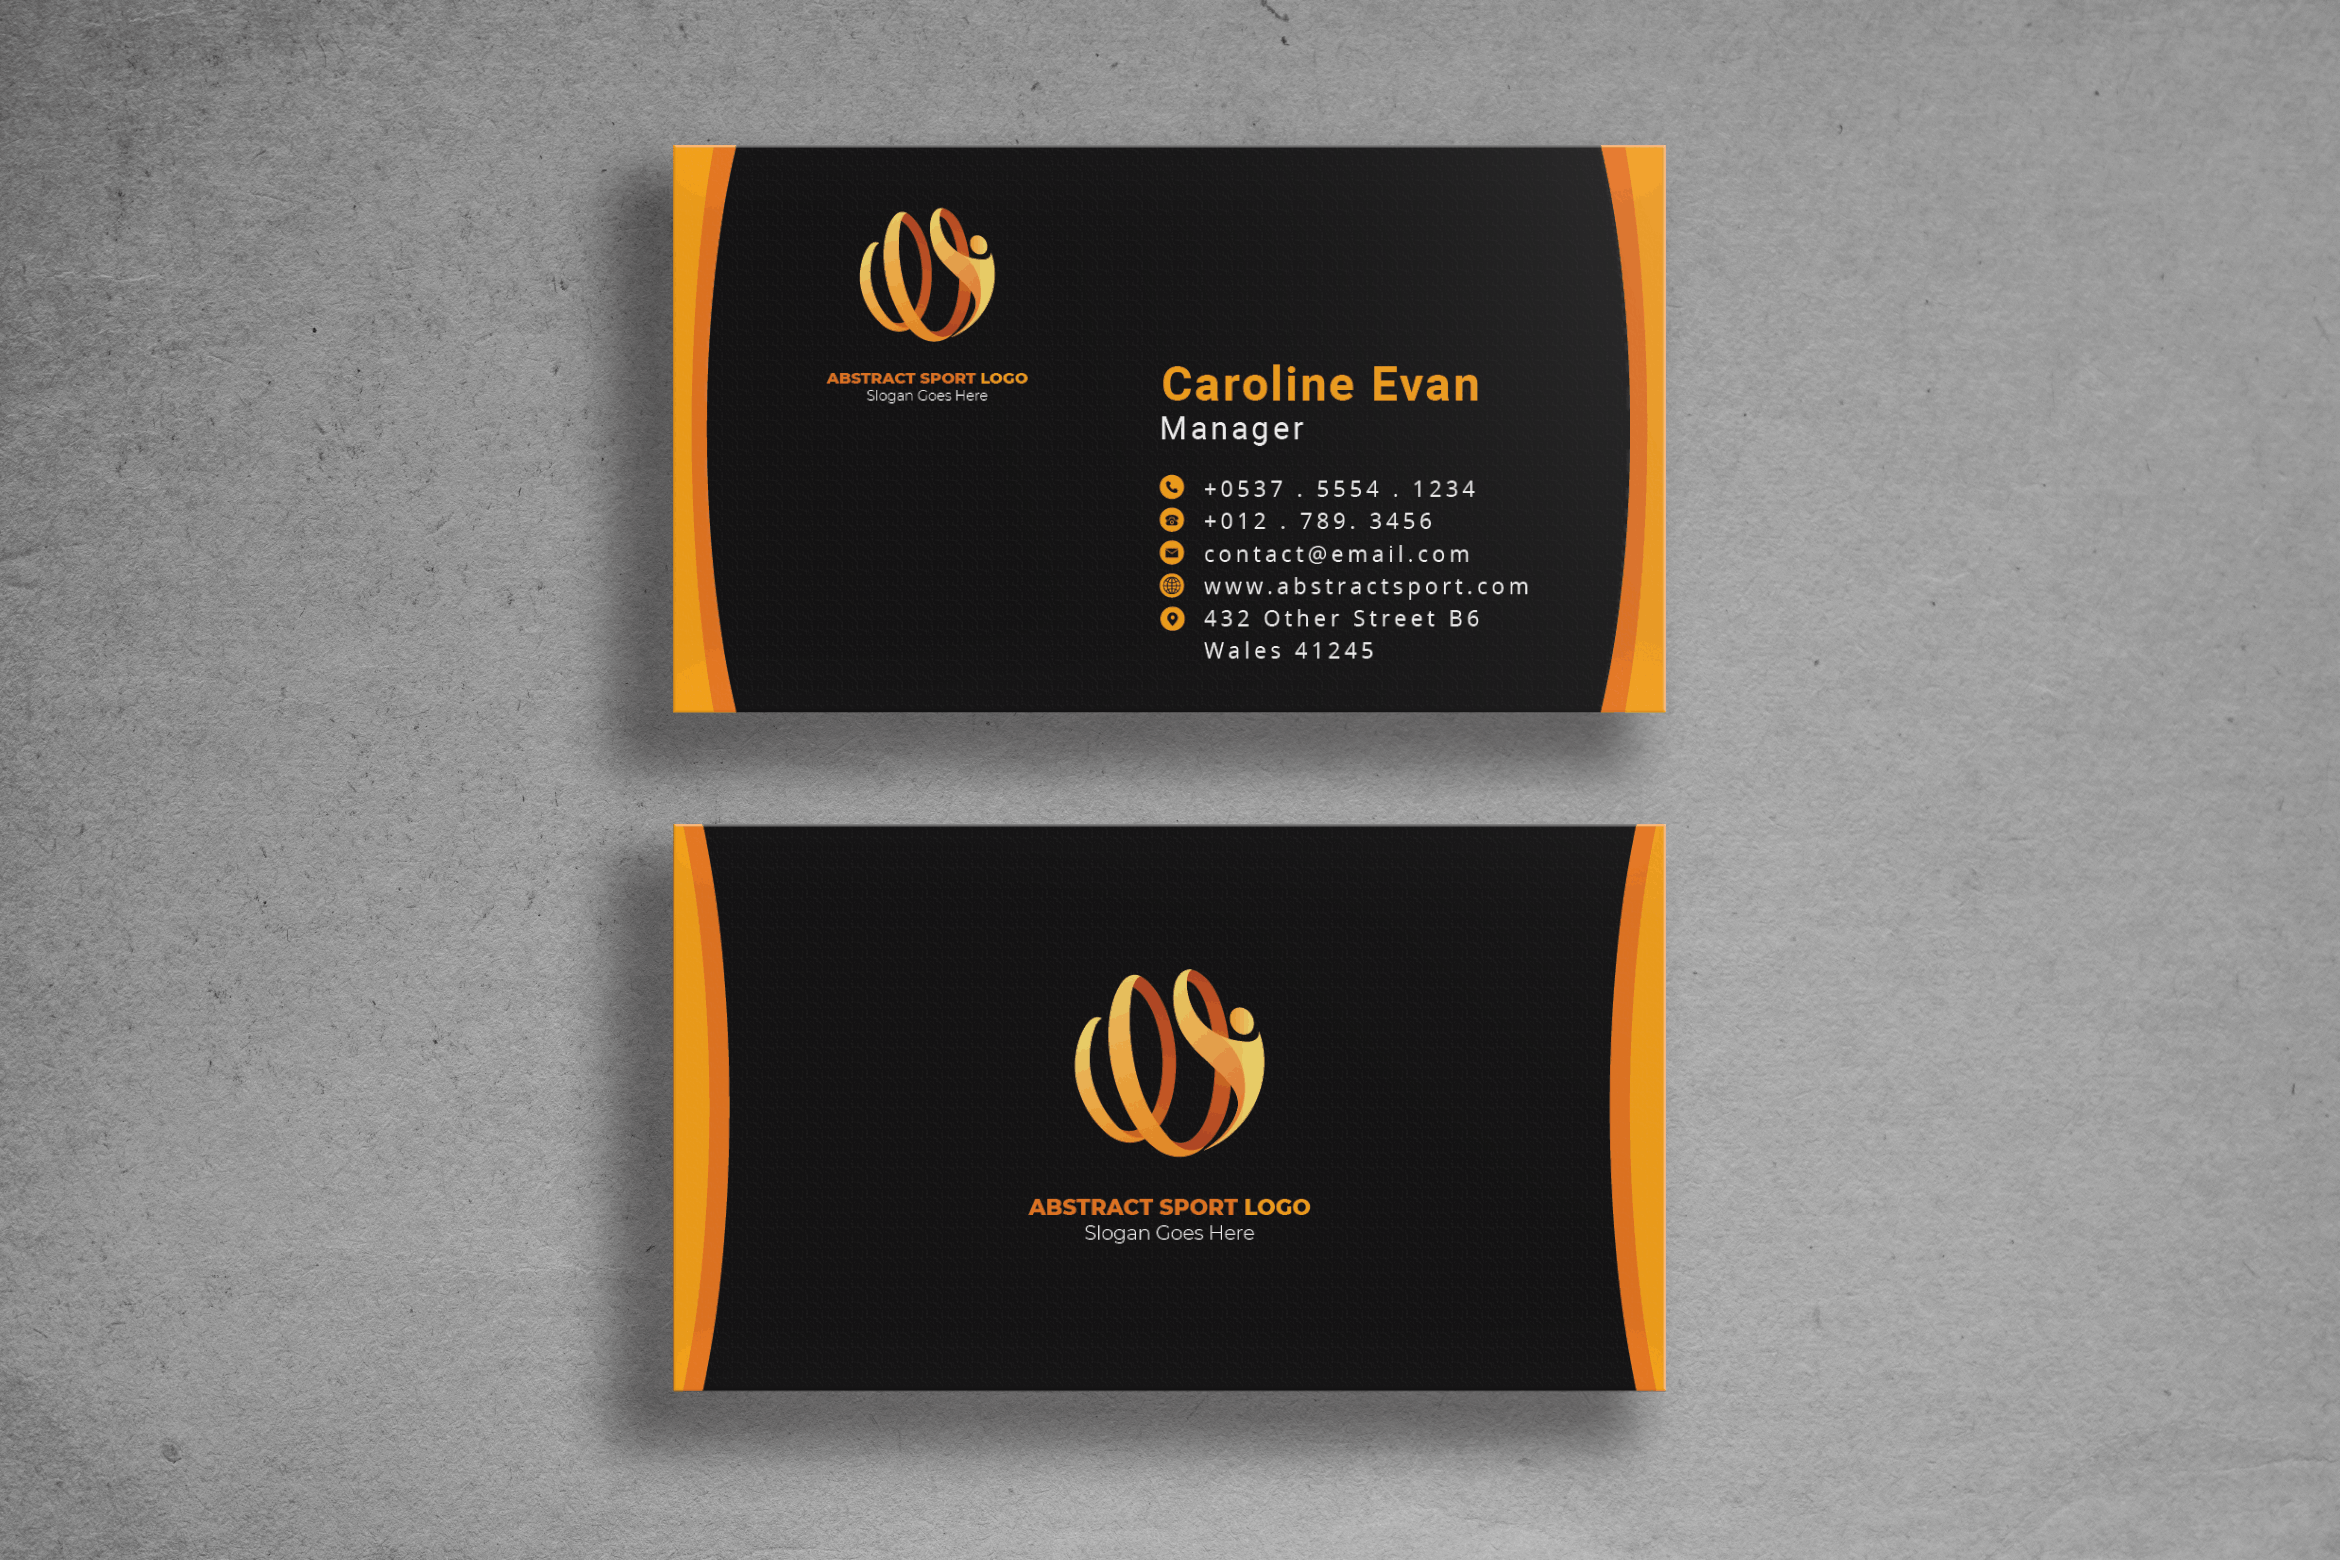 Business Card - Sport Club Identity